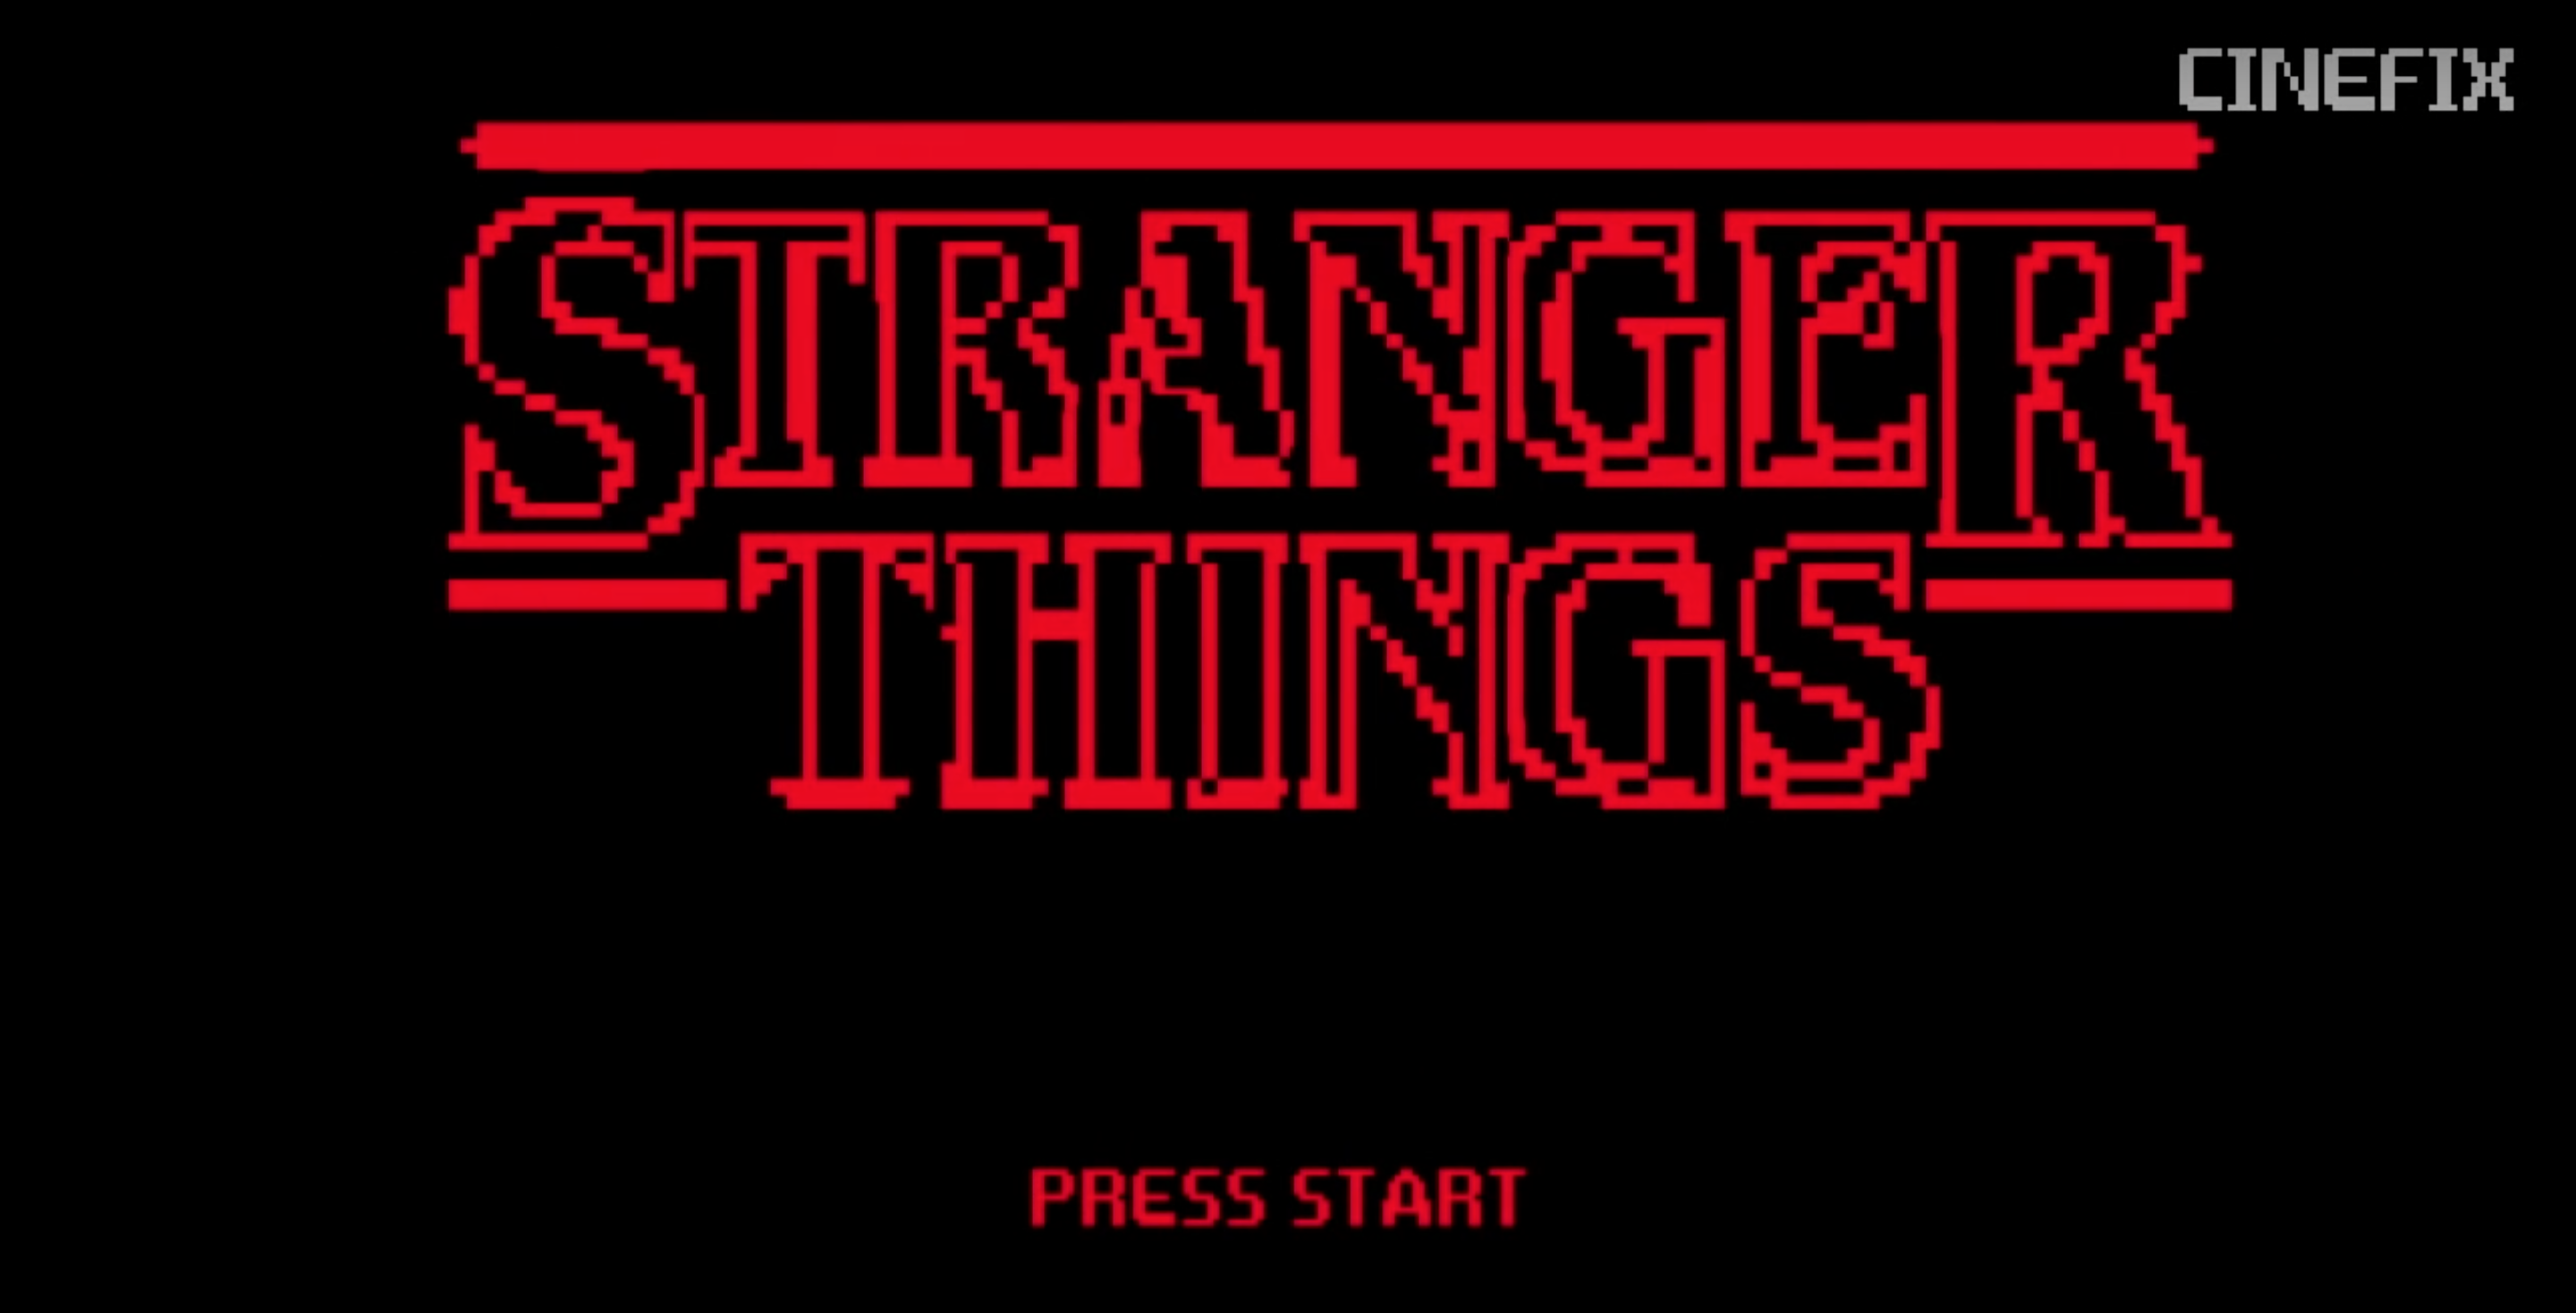 WATCH: 'Stranger Things' Gets a Fitting 8-Bit Adaptation